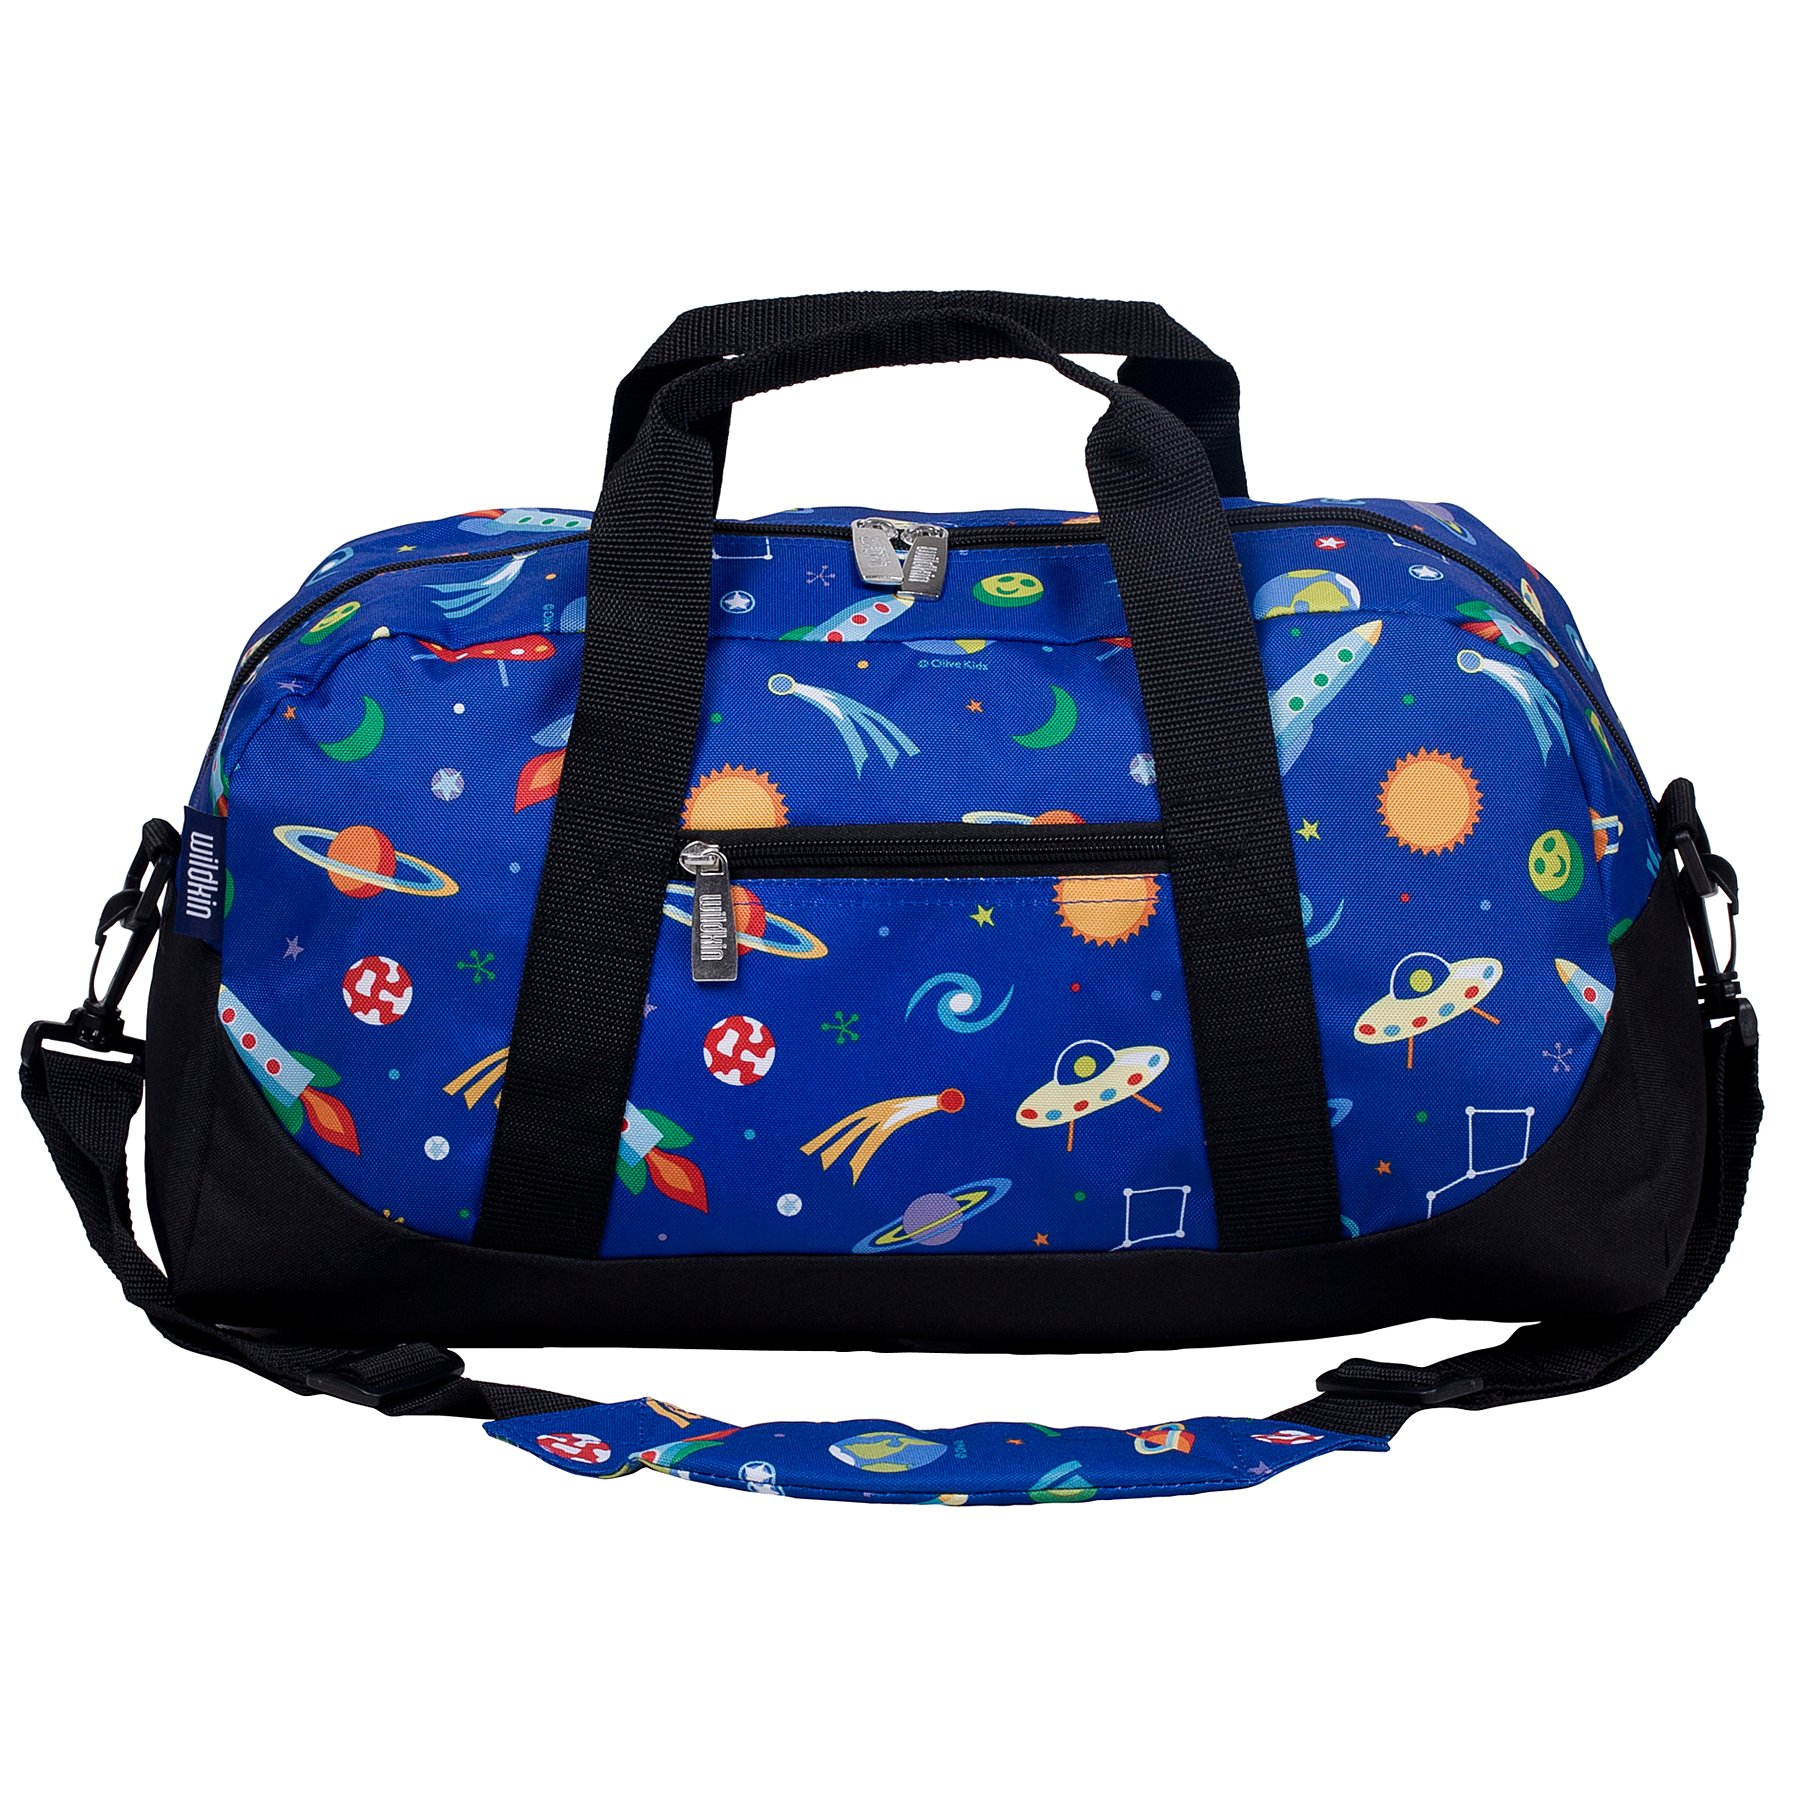 Wildkin Overnighter Duffel Bag, Features Moisture-Resistant Lining and Padded Shoulder Strap, Perfect for Sleepovers, Sports Practice, and Travel, Olive Kids Designs – Out of this World by Wildkin (Image #1)